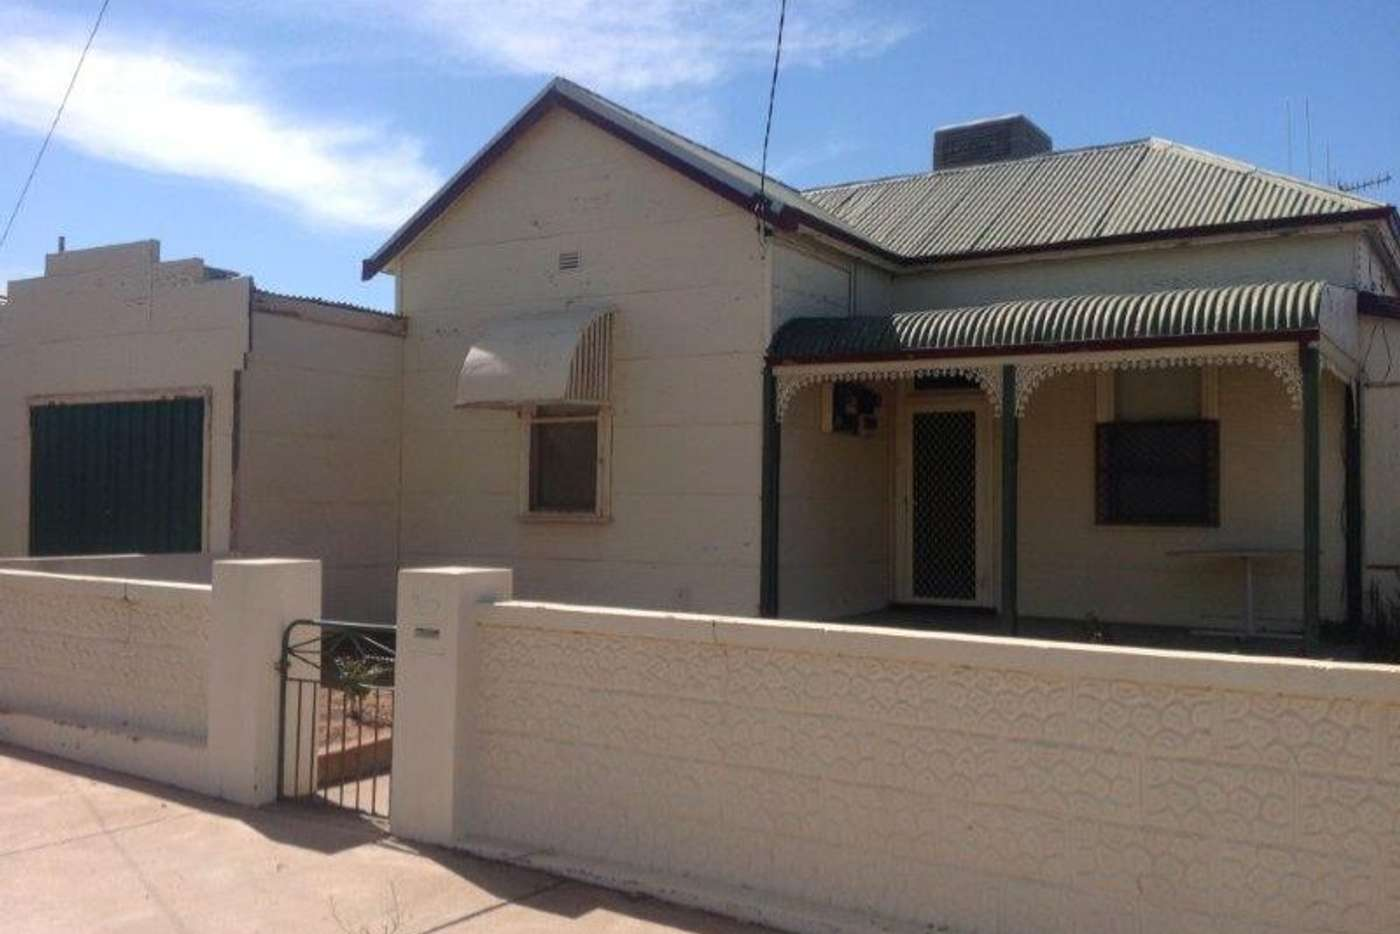 Main view of Homely house listing, 307 Piper Street, Broken Hill NSW 2880